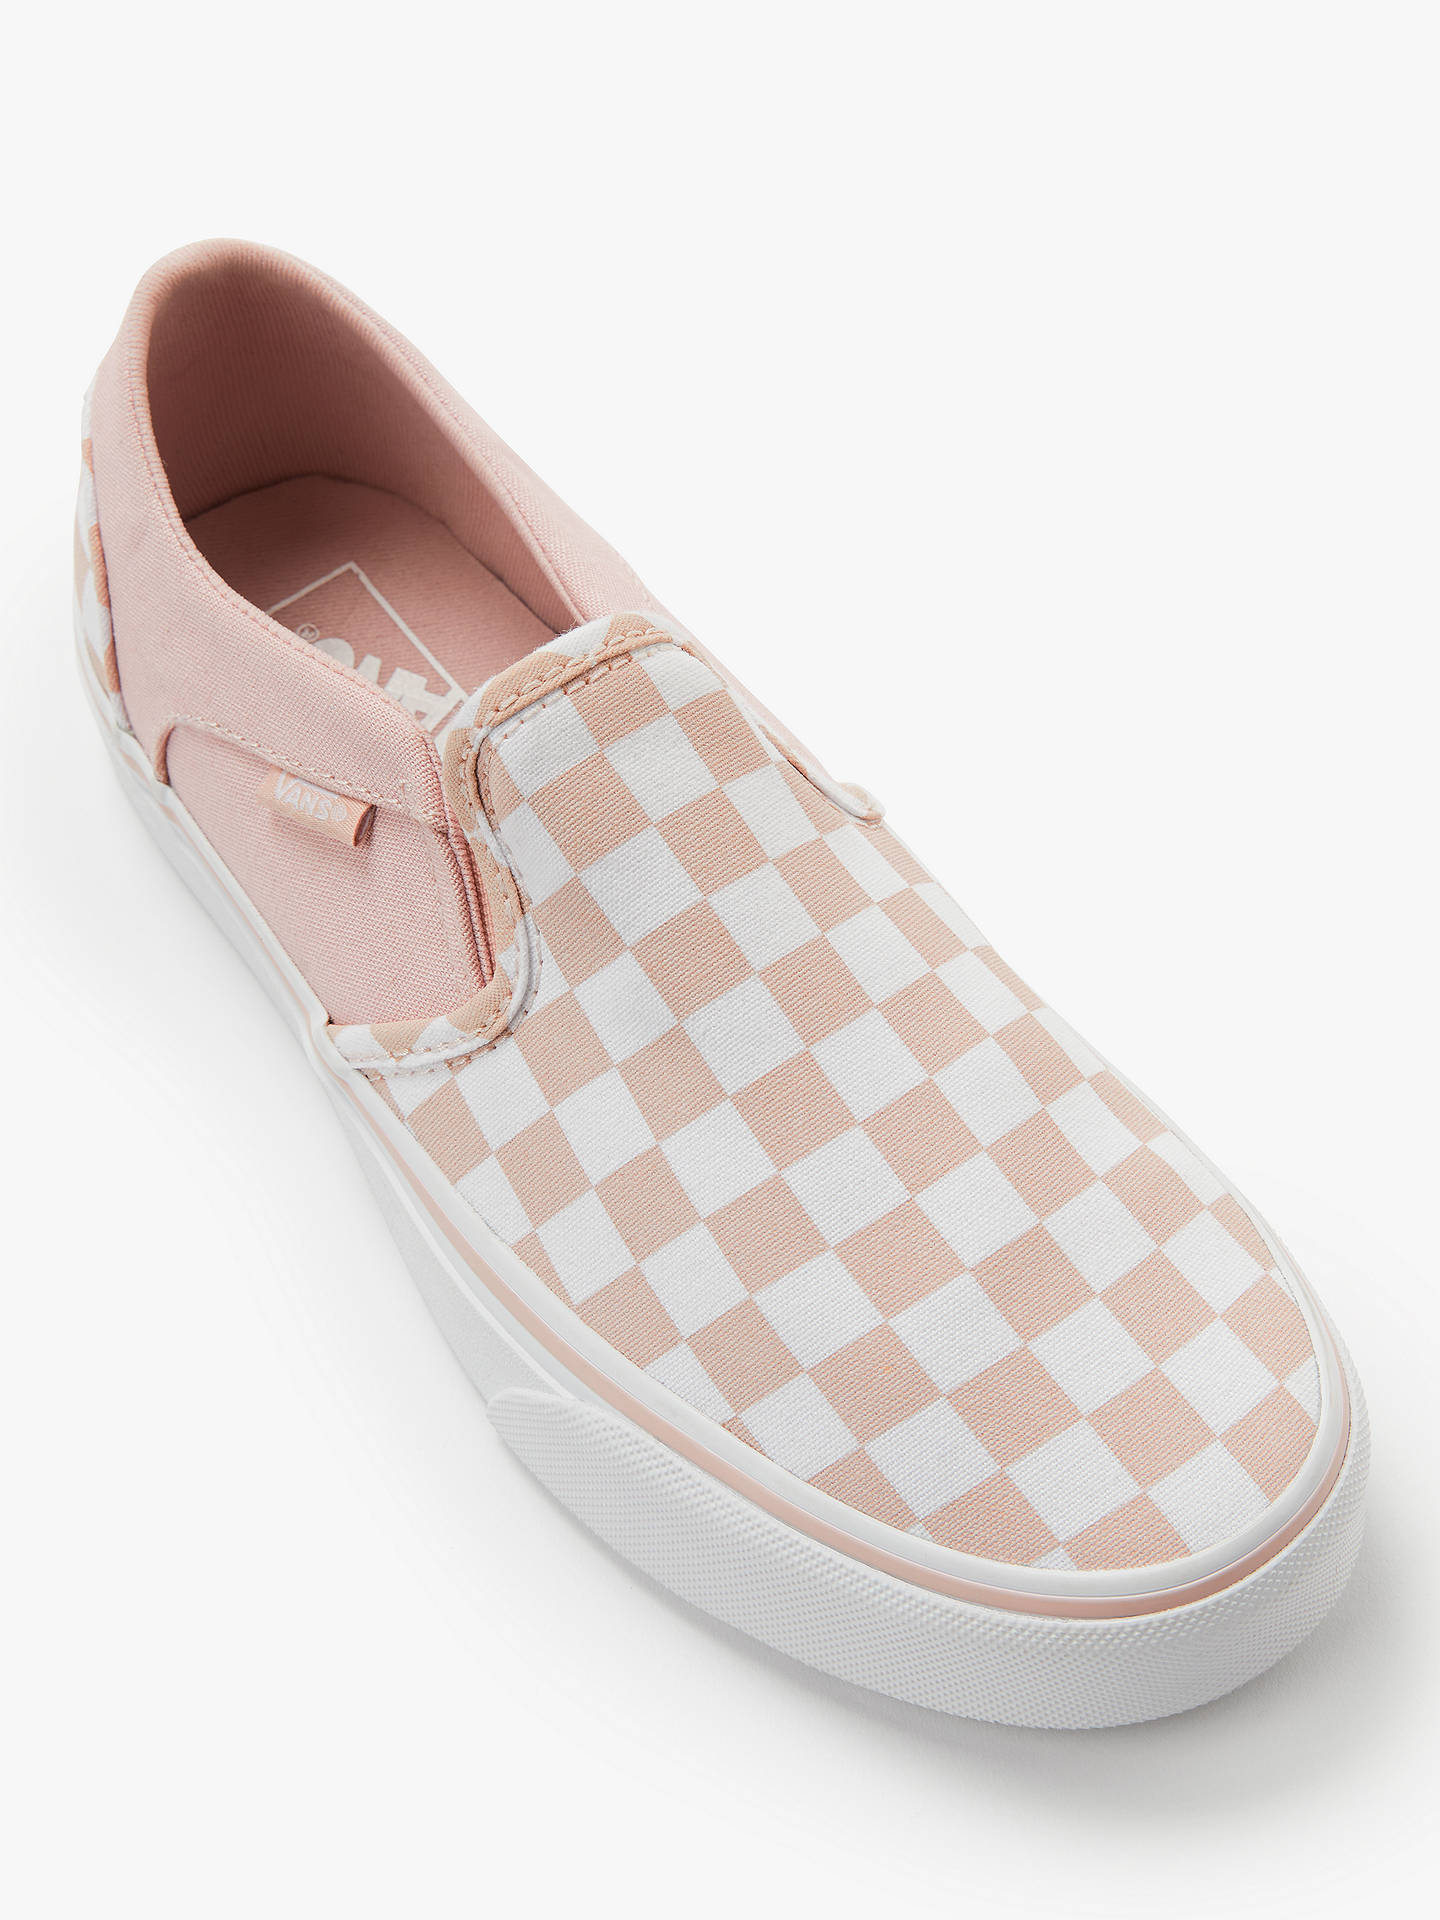 5bb59efa5deb ... Buy Vans Asher Checkerboard Slip On Trainers